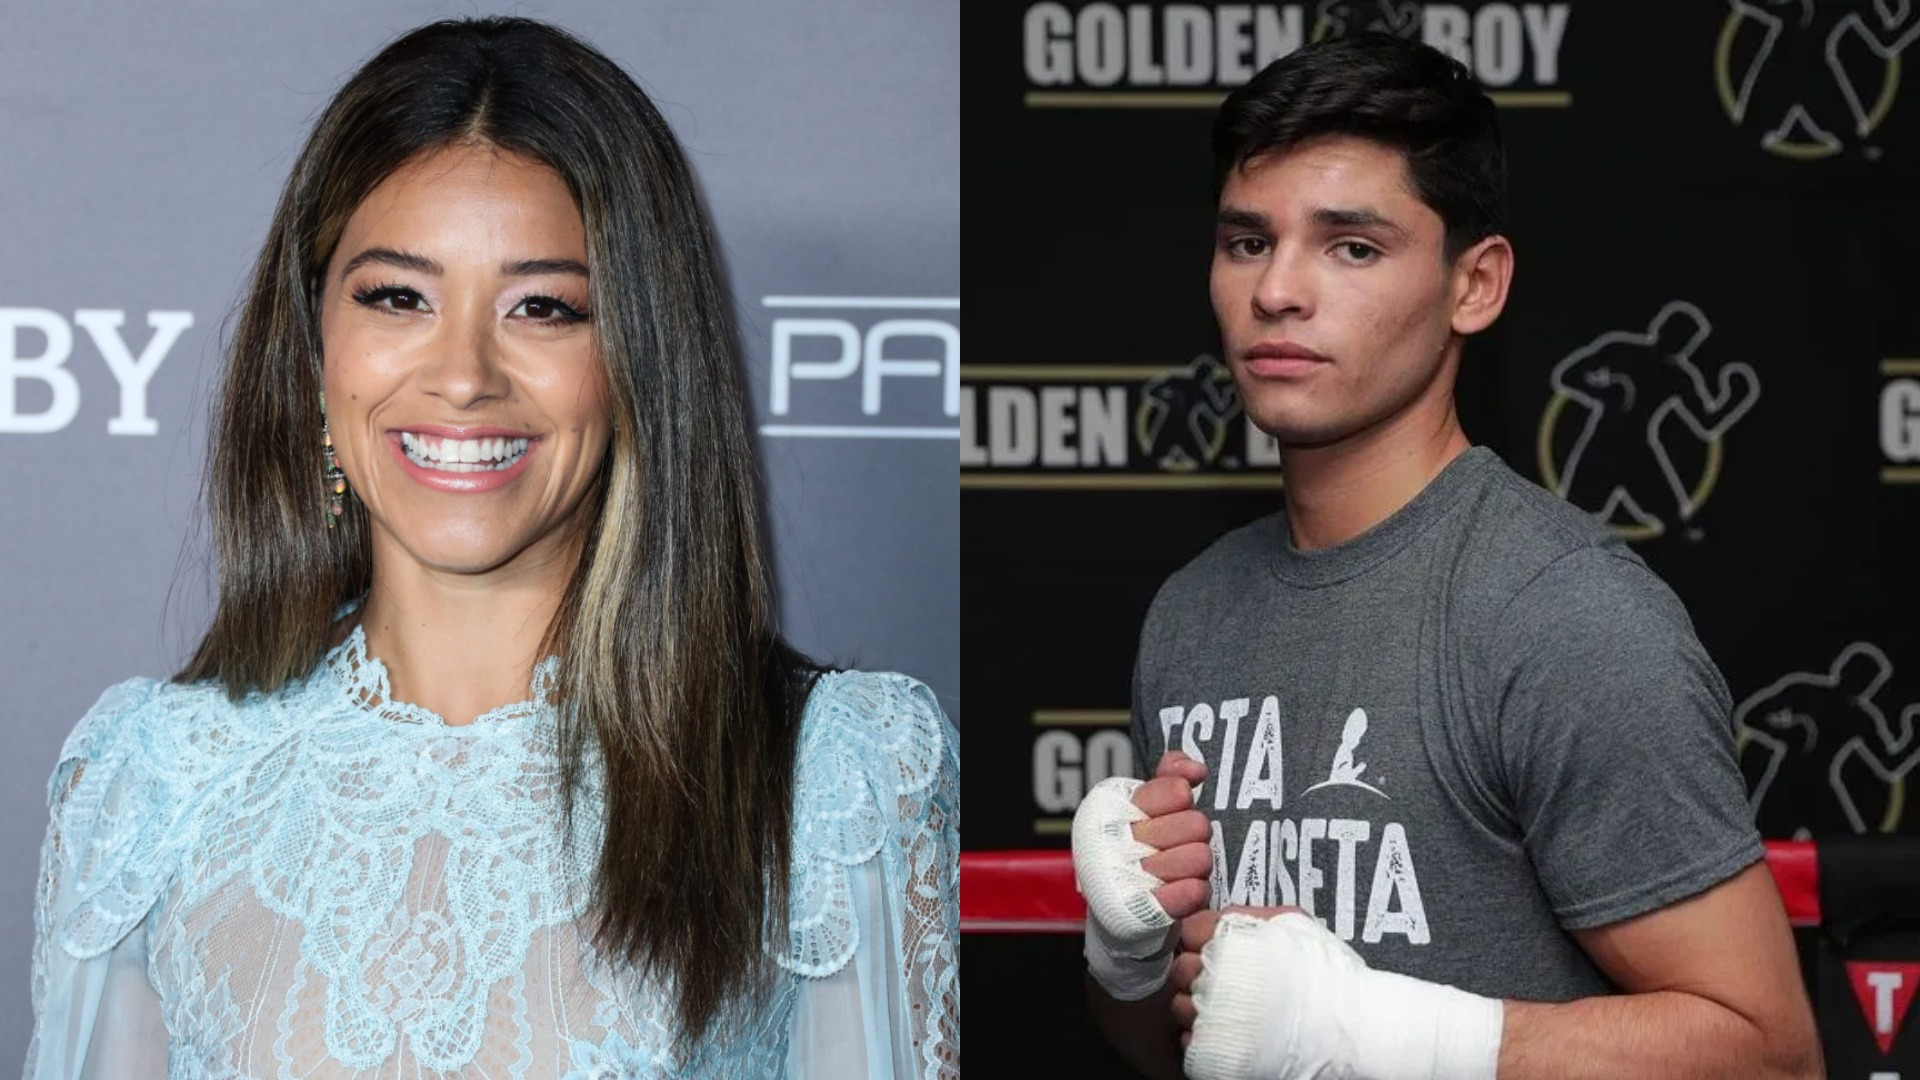 Deadline is reporting that Gina Rodriguez looks set to make her directorial feature debut as she has signed up to direct a boxing drama inspired by the experiences of Mexican-American boxer Ryan Garcia, who will also star as the lead character.